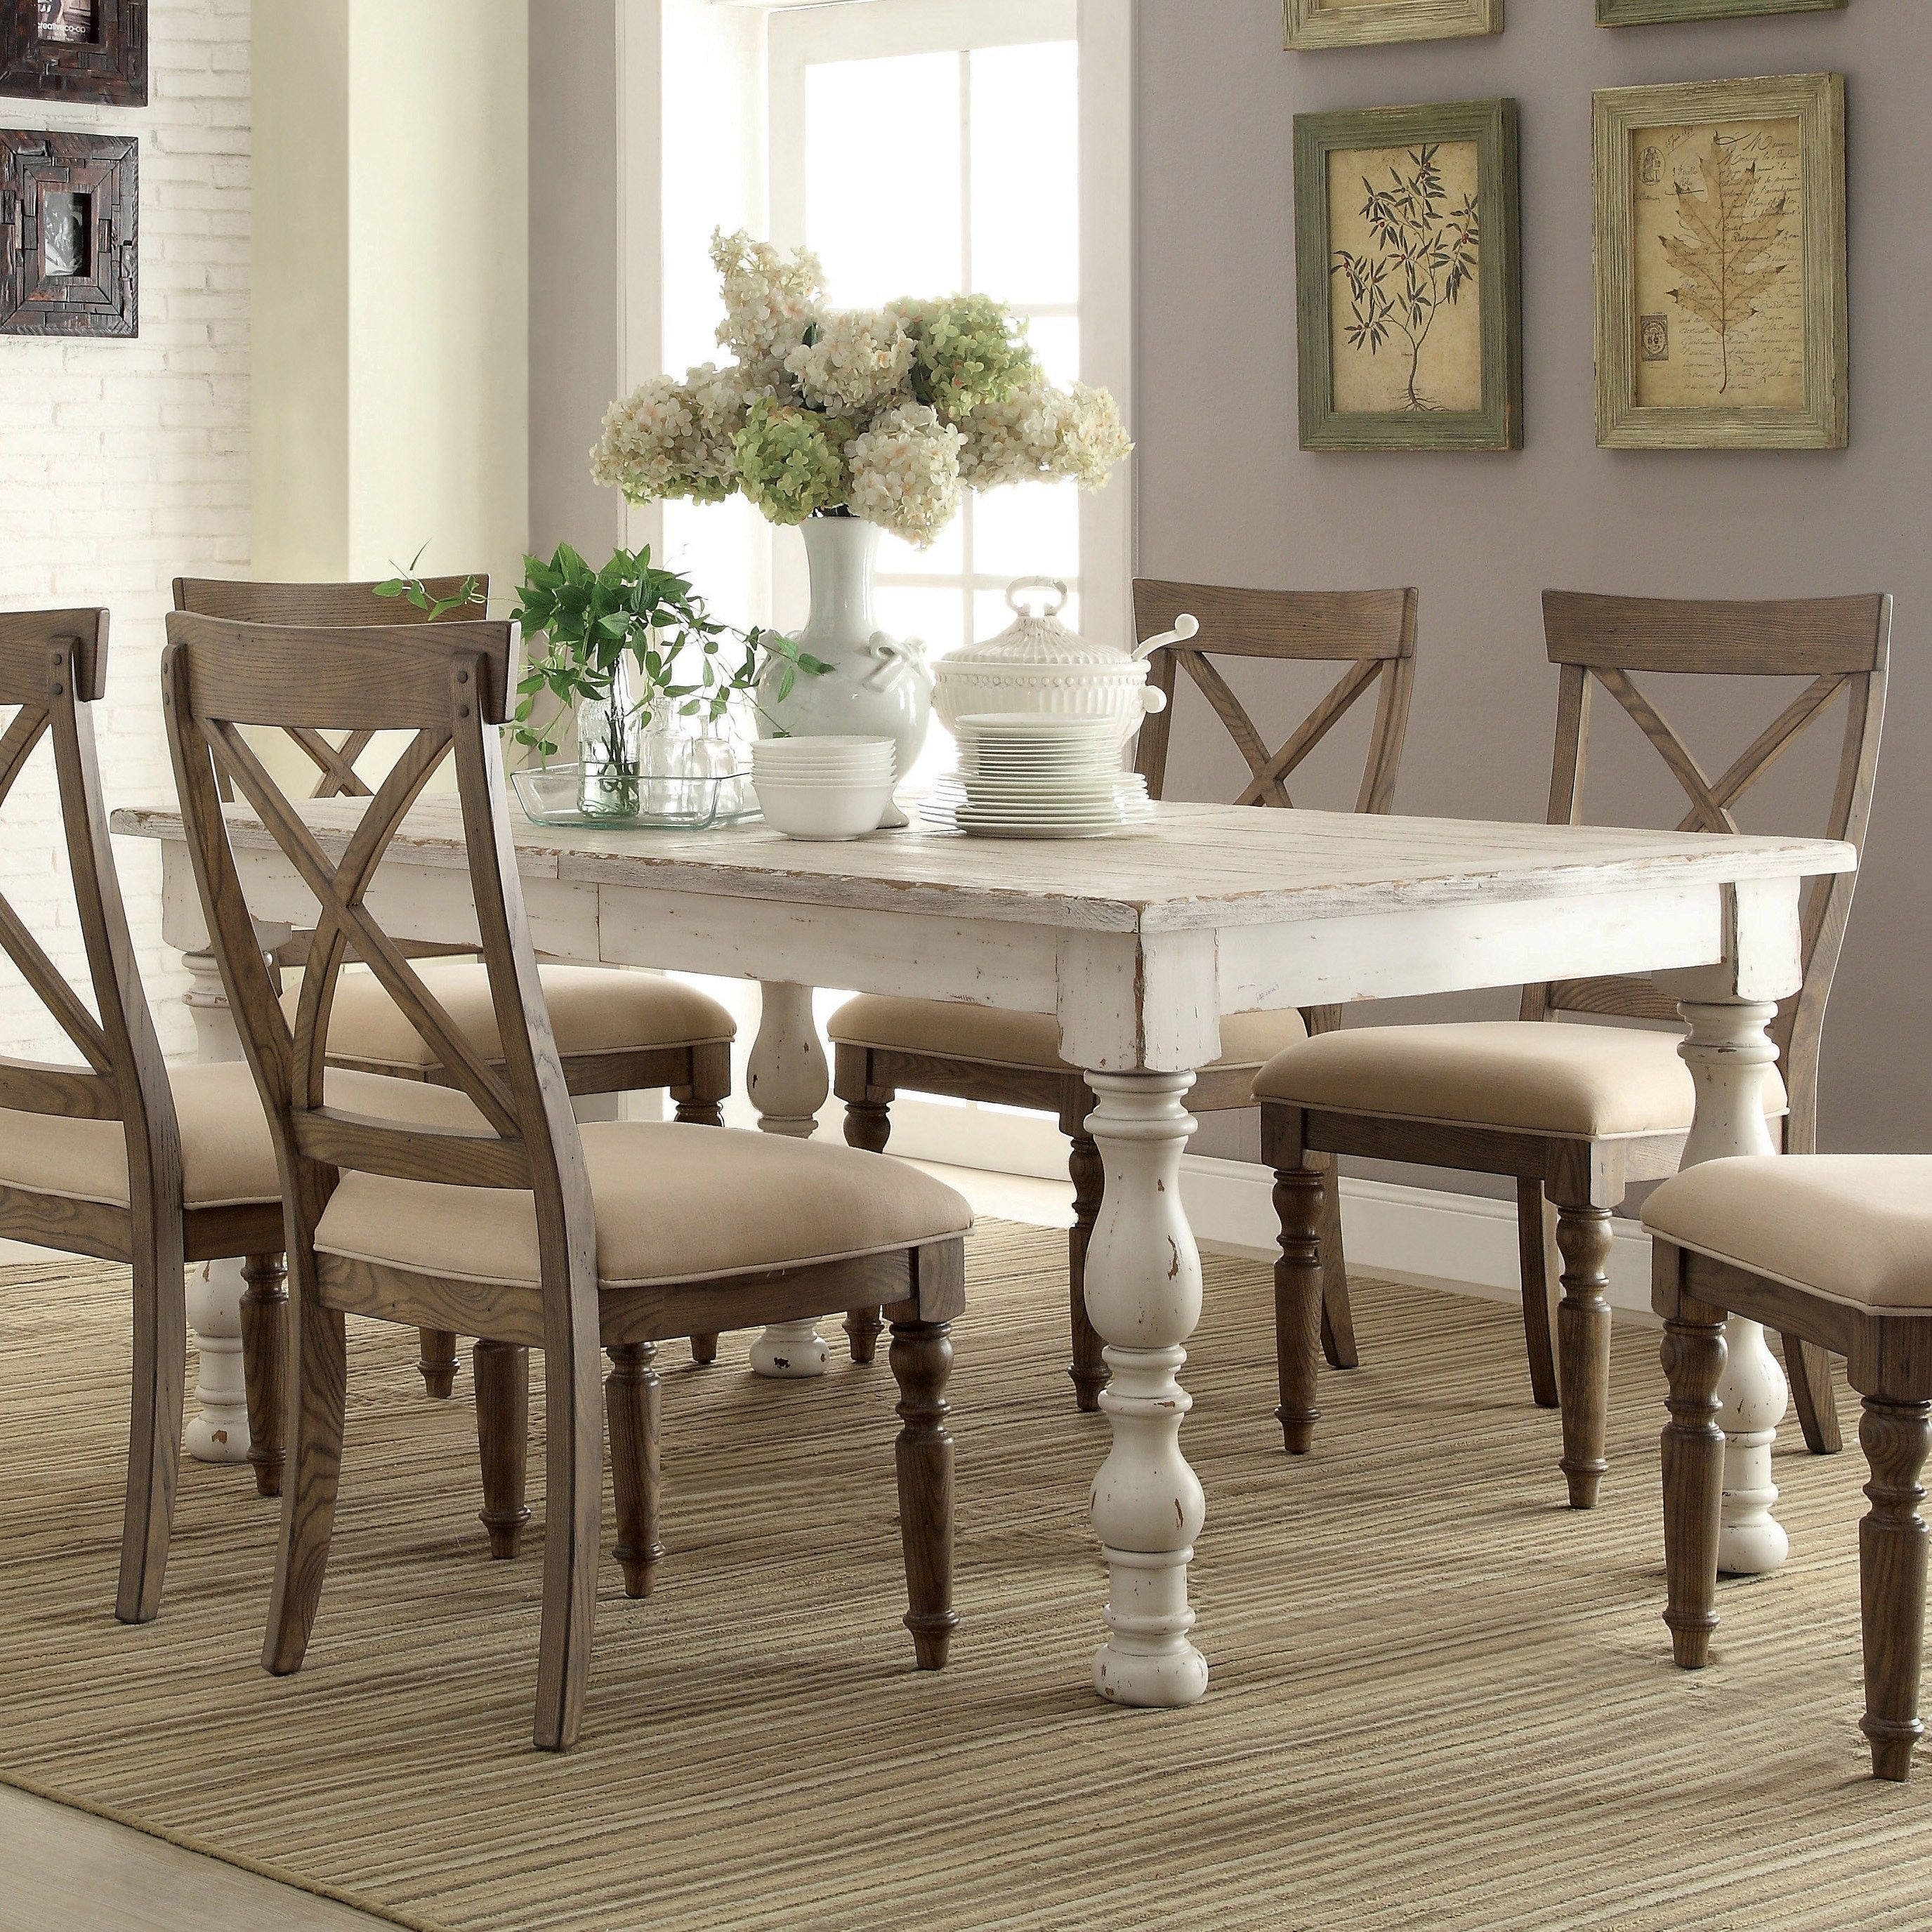 White Dining Table Aberdeen Wood Rectangular Dining Table and Chairs in Weathered, Worn White IJLNHTH